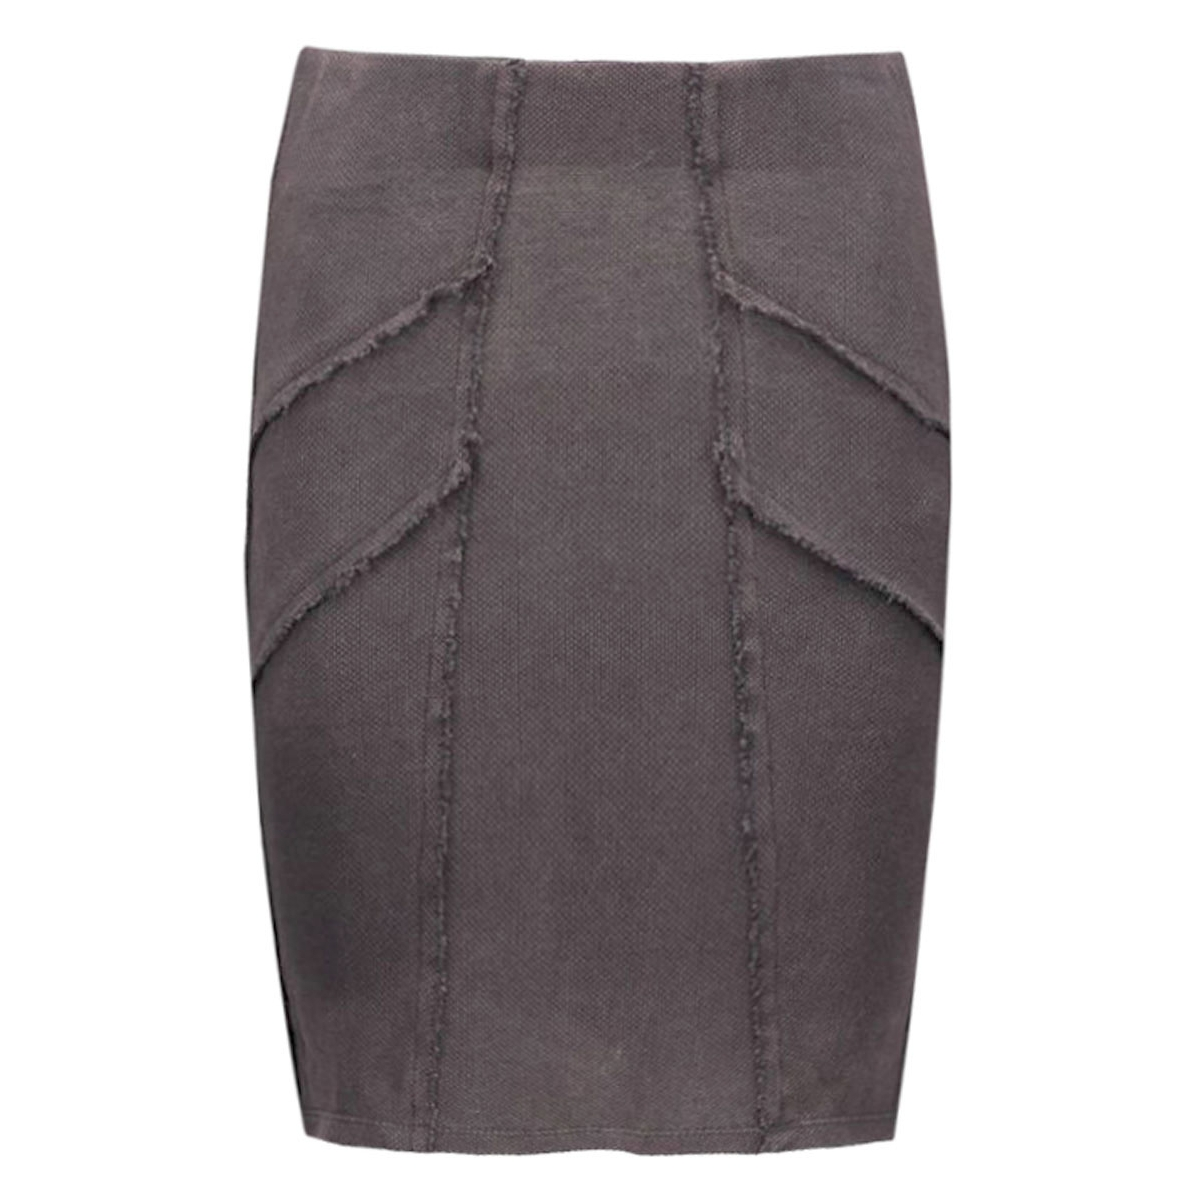 objsine mw pencil skirt 87 23023102 object rok anthracite